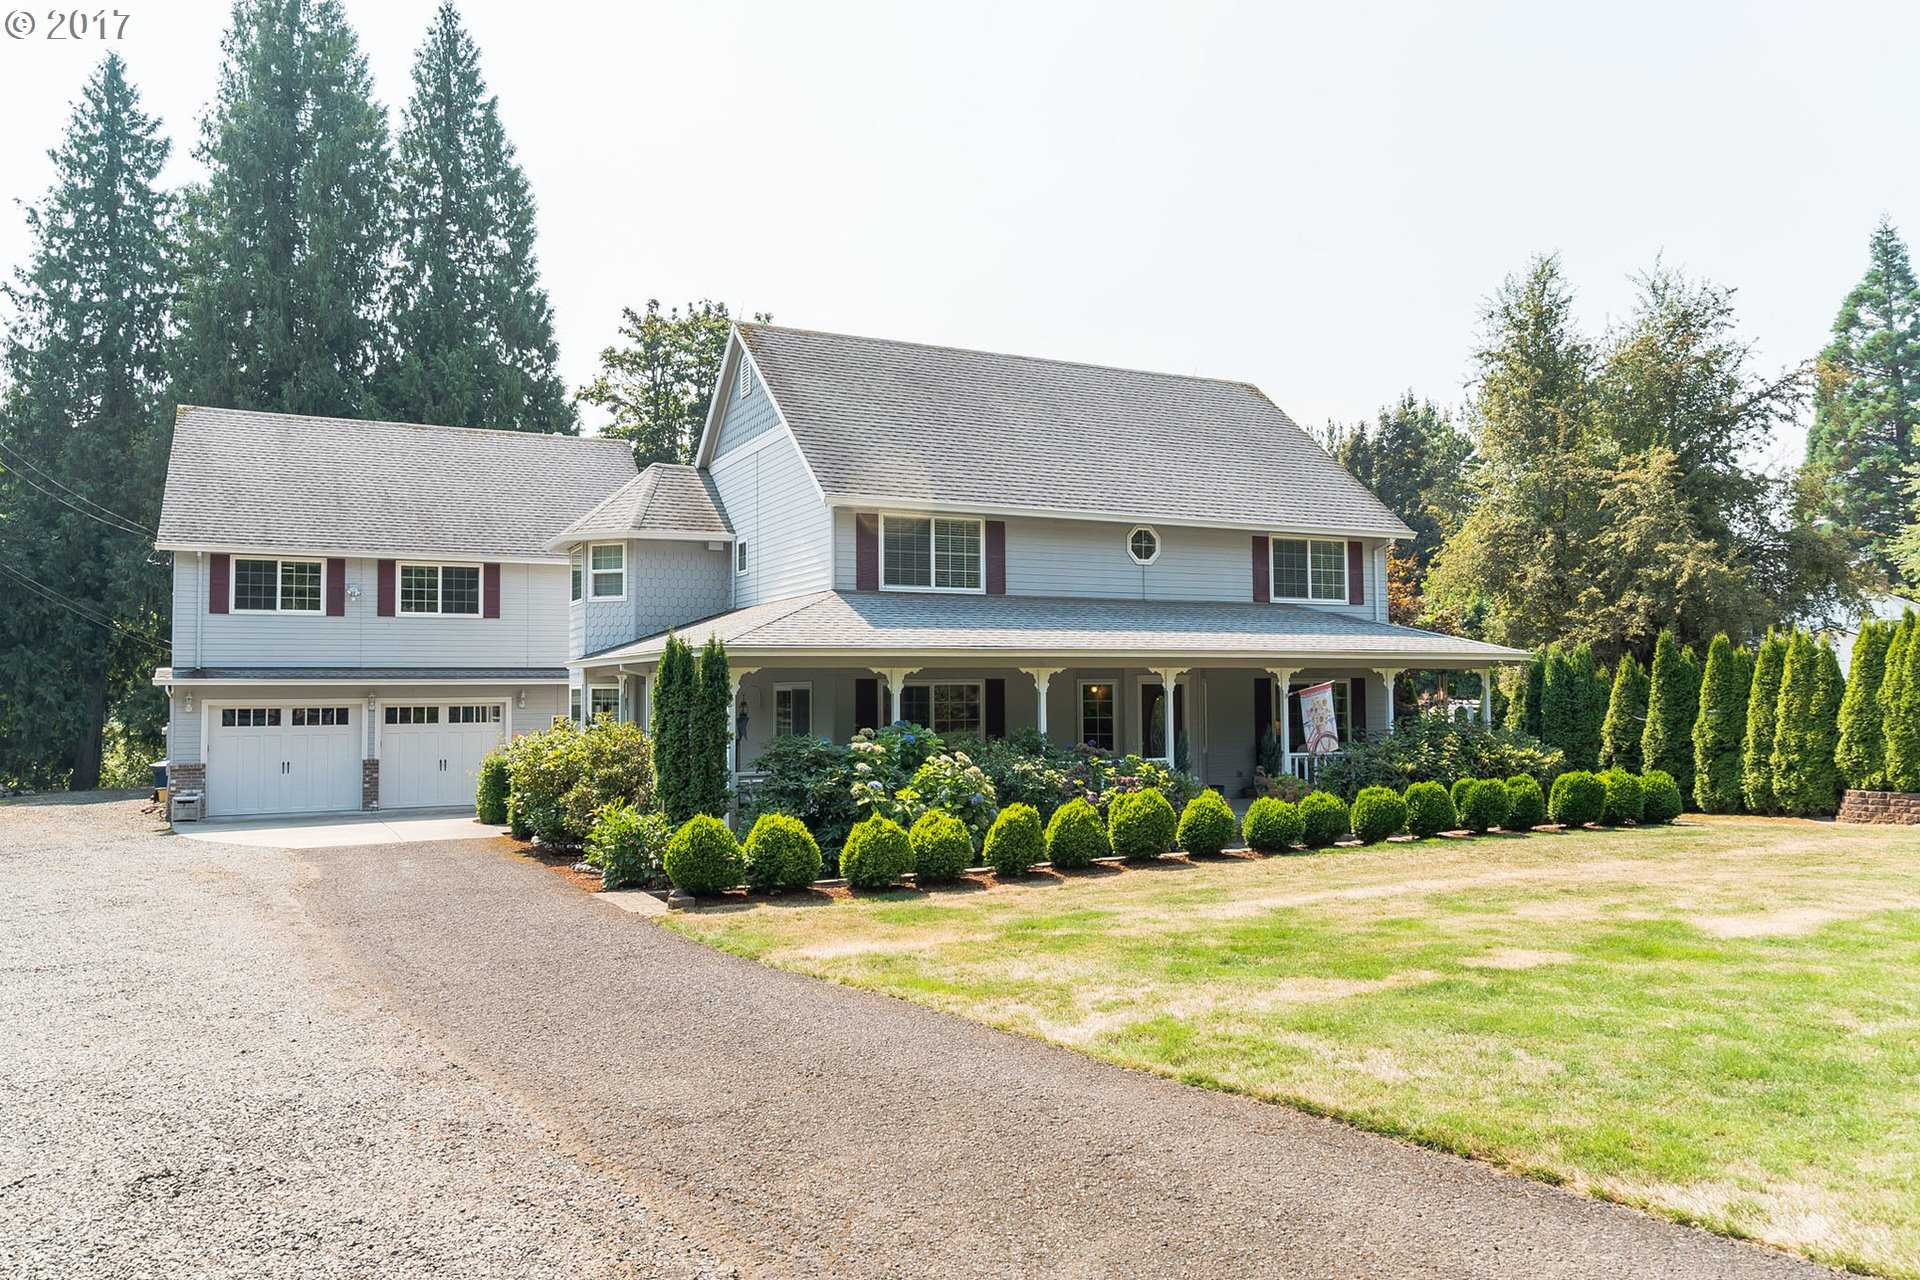 $765,900 - 4Br/4Ba -  for Sale in Troutdale